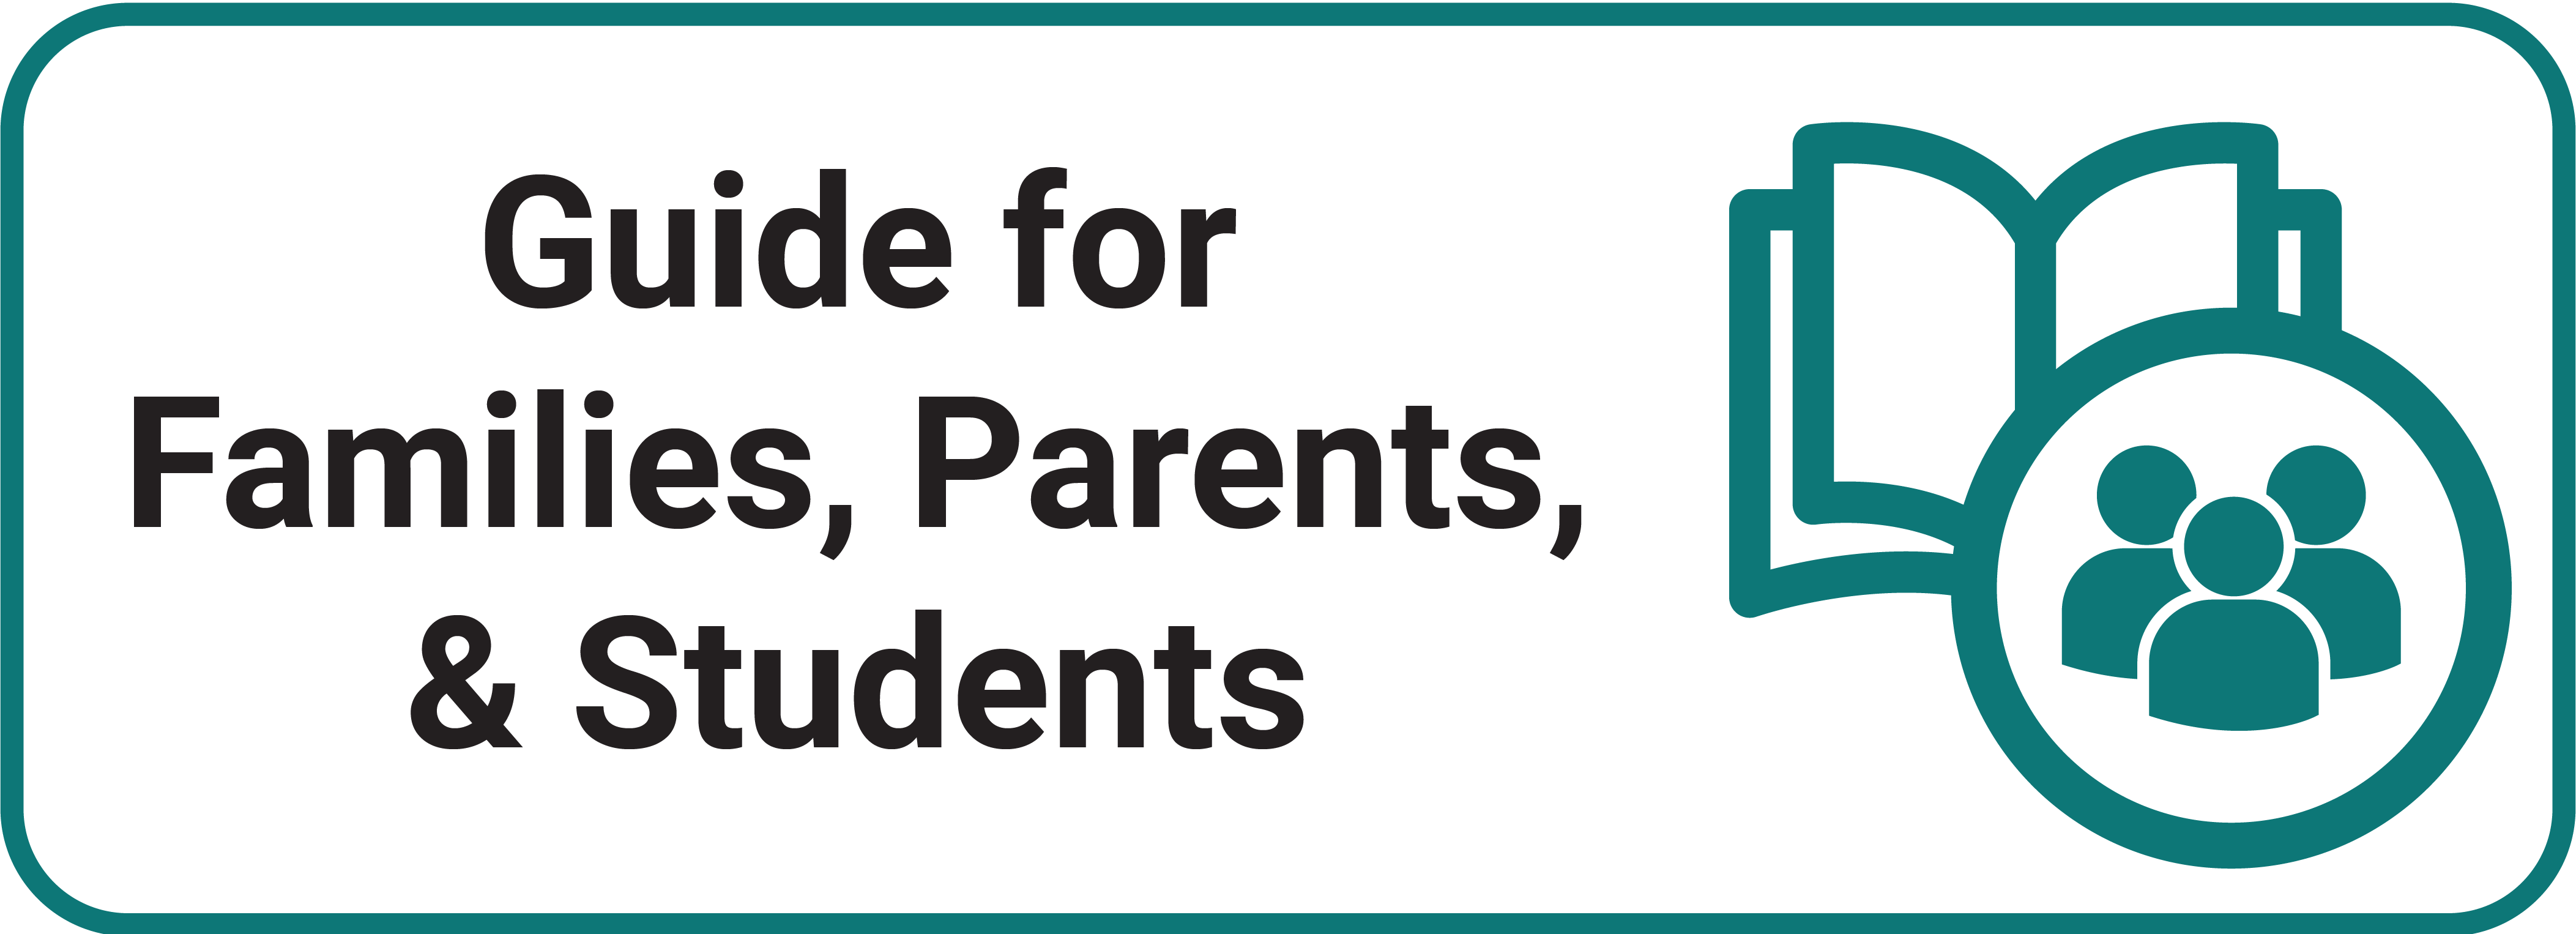 Guide for Families, Parents, and Students